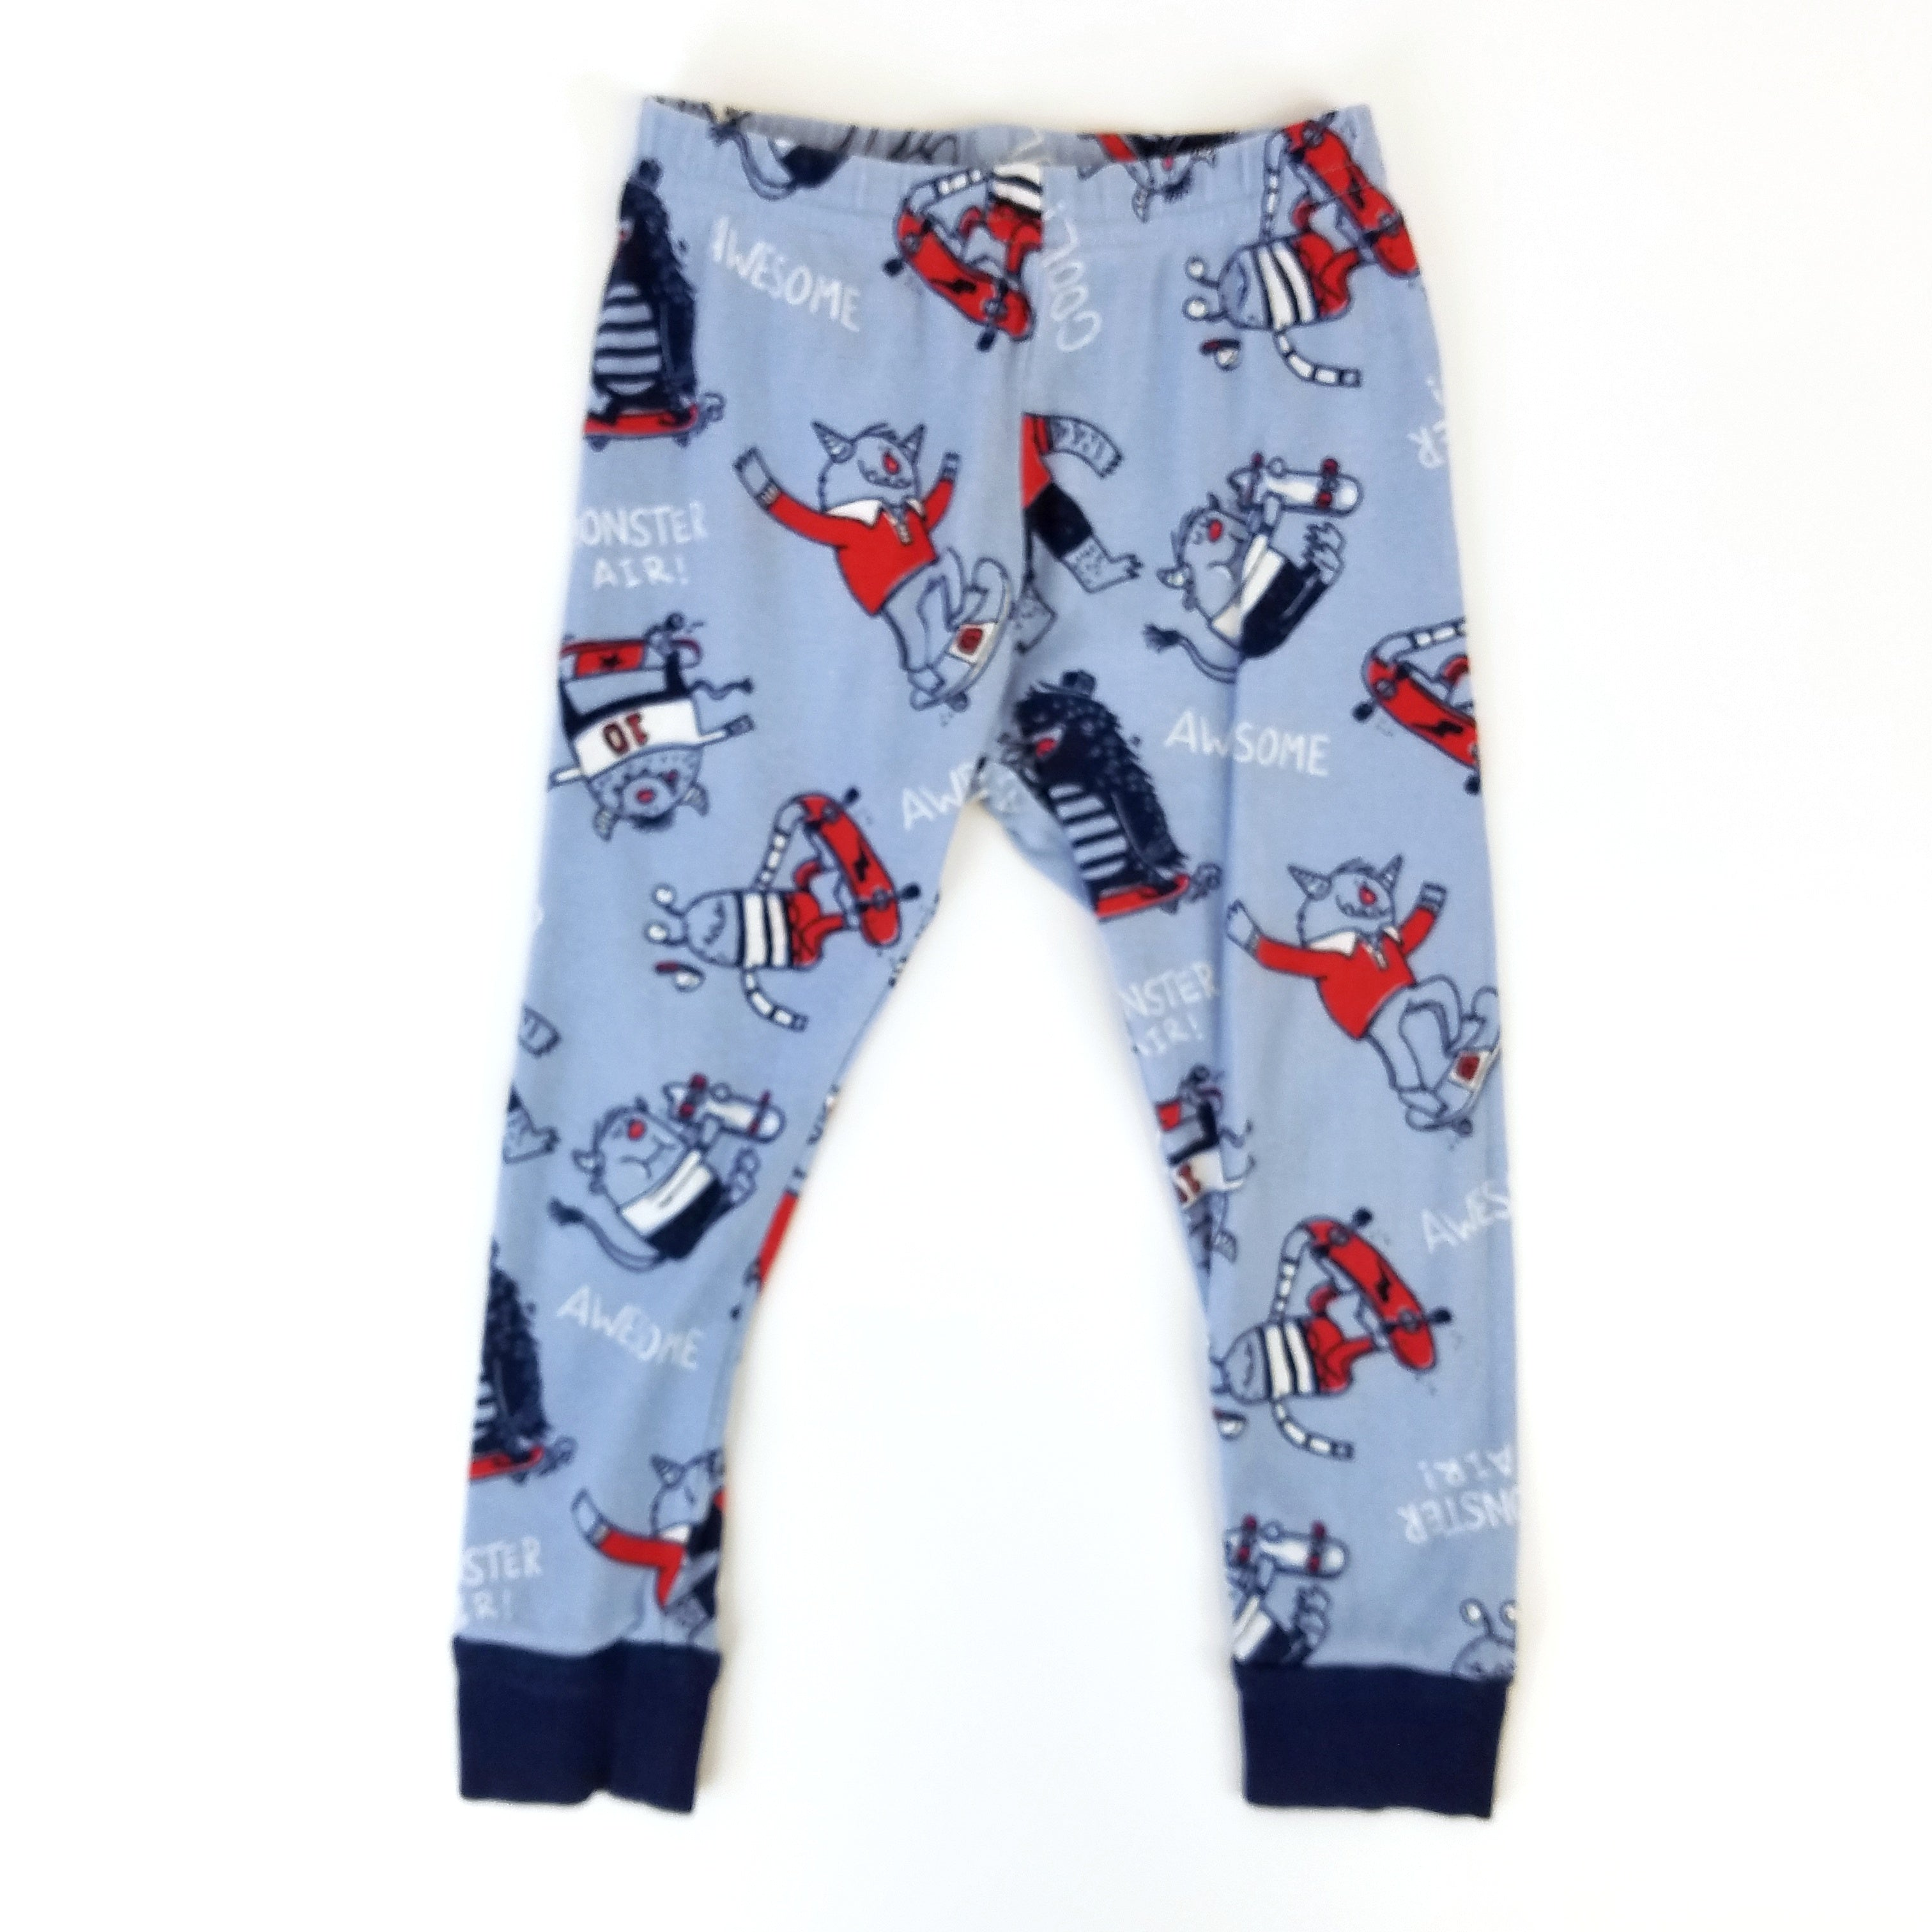 24mo Monsters PH Bottoms - Wild Child